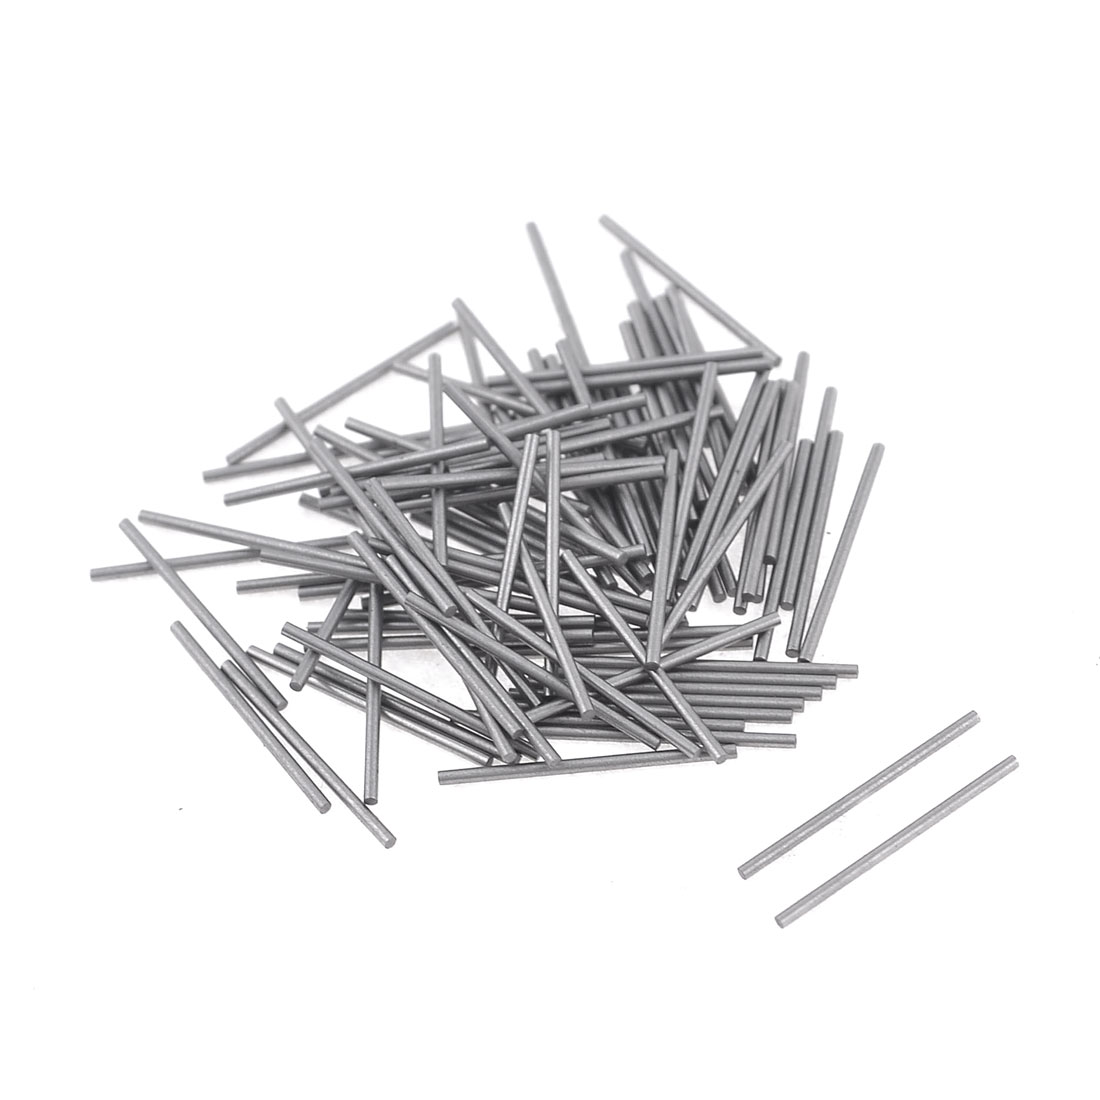 100 Pcs 0.8mm x 15.8mm Parallel Dowel Pins Fasten Elements